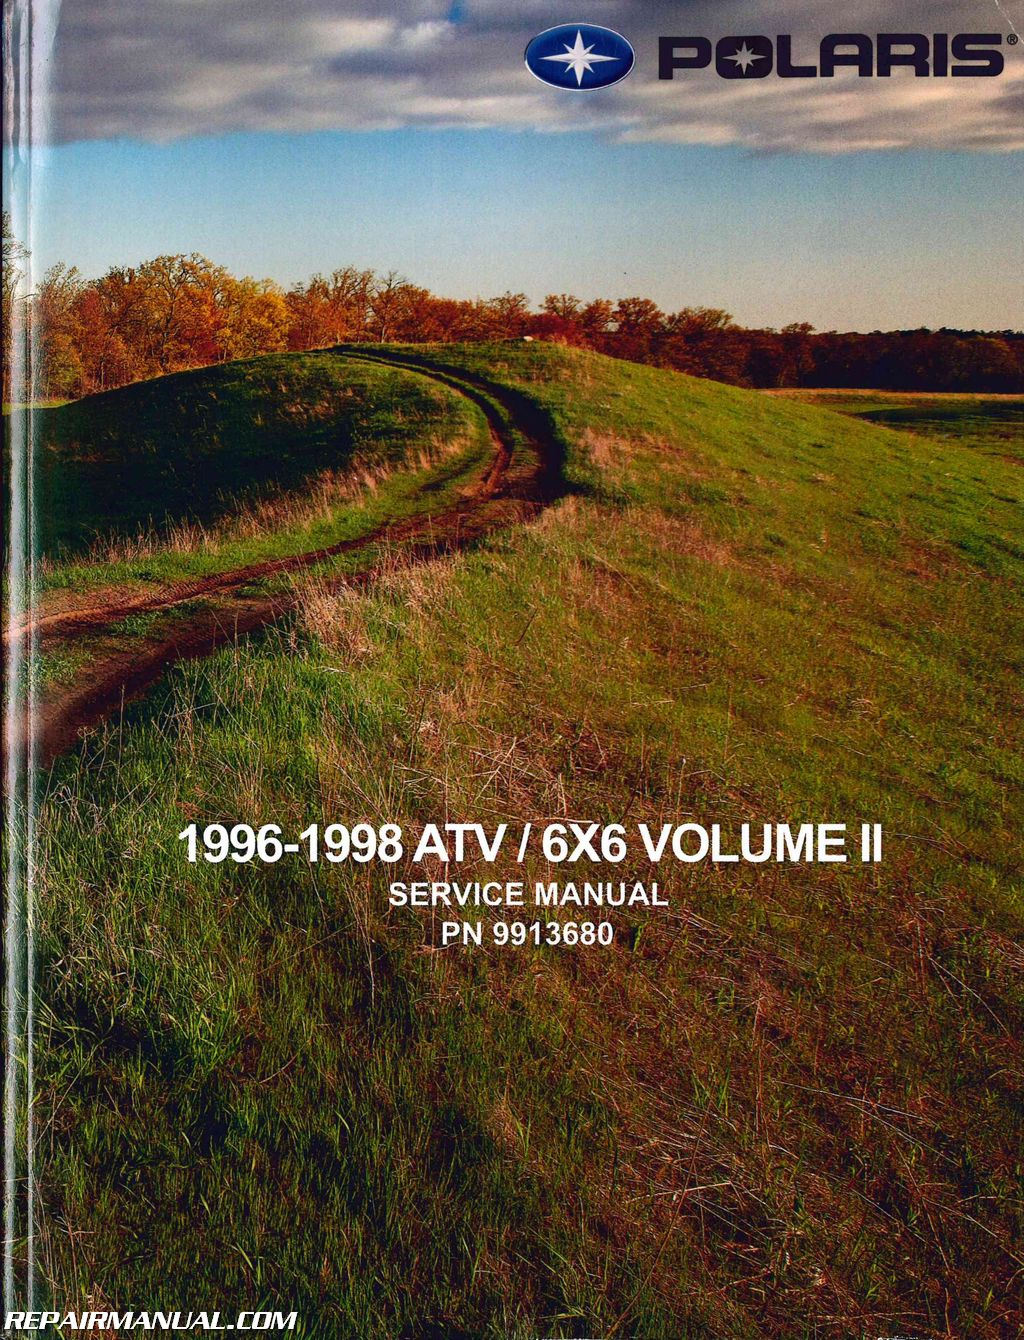 1996-1998 Polaris ATV and Light Utility Vehicle Repair Manual